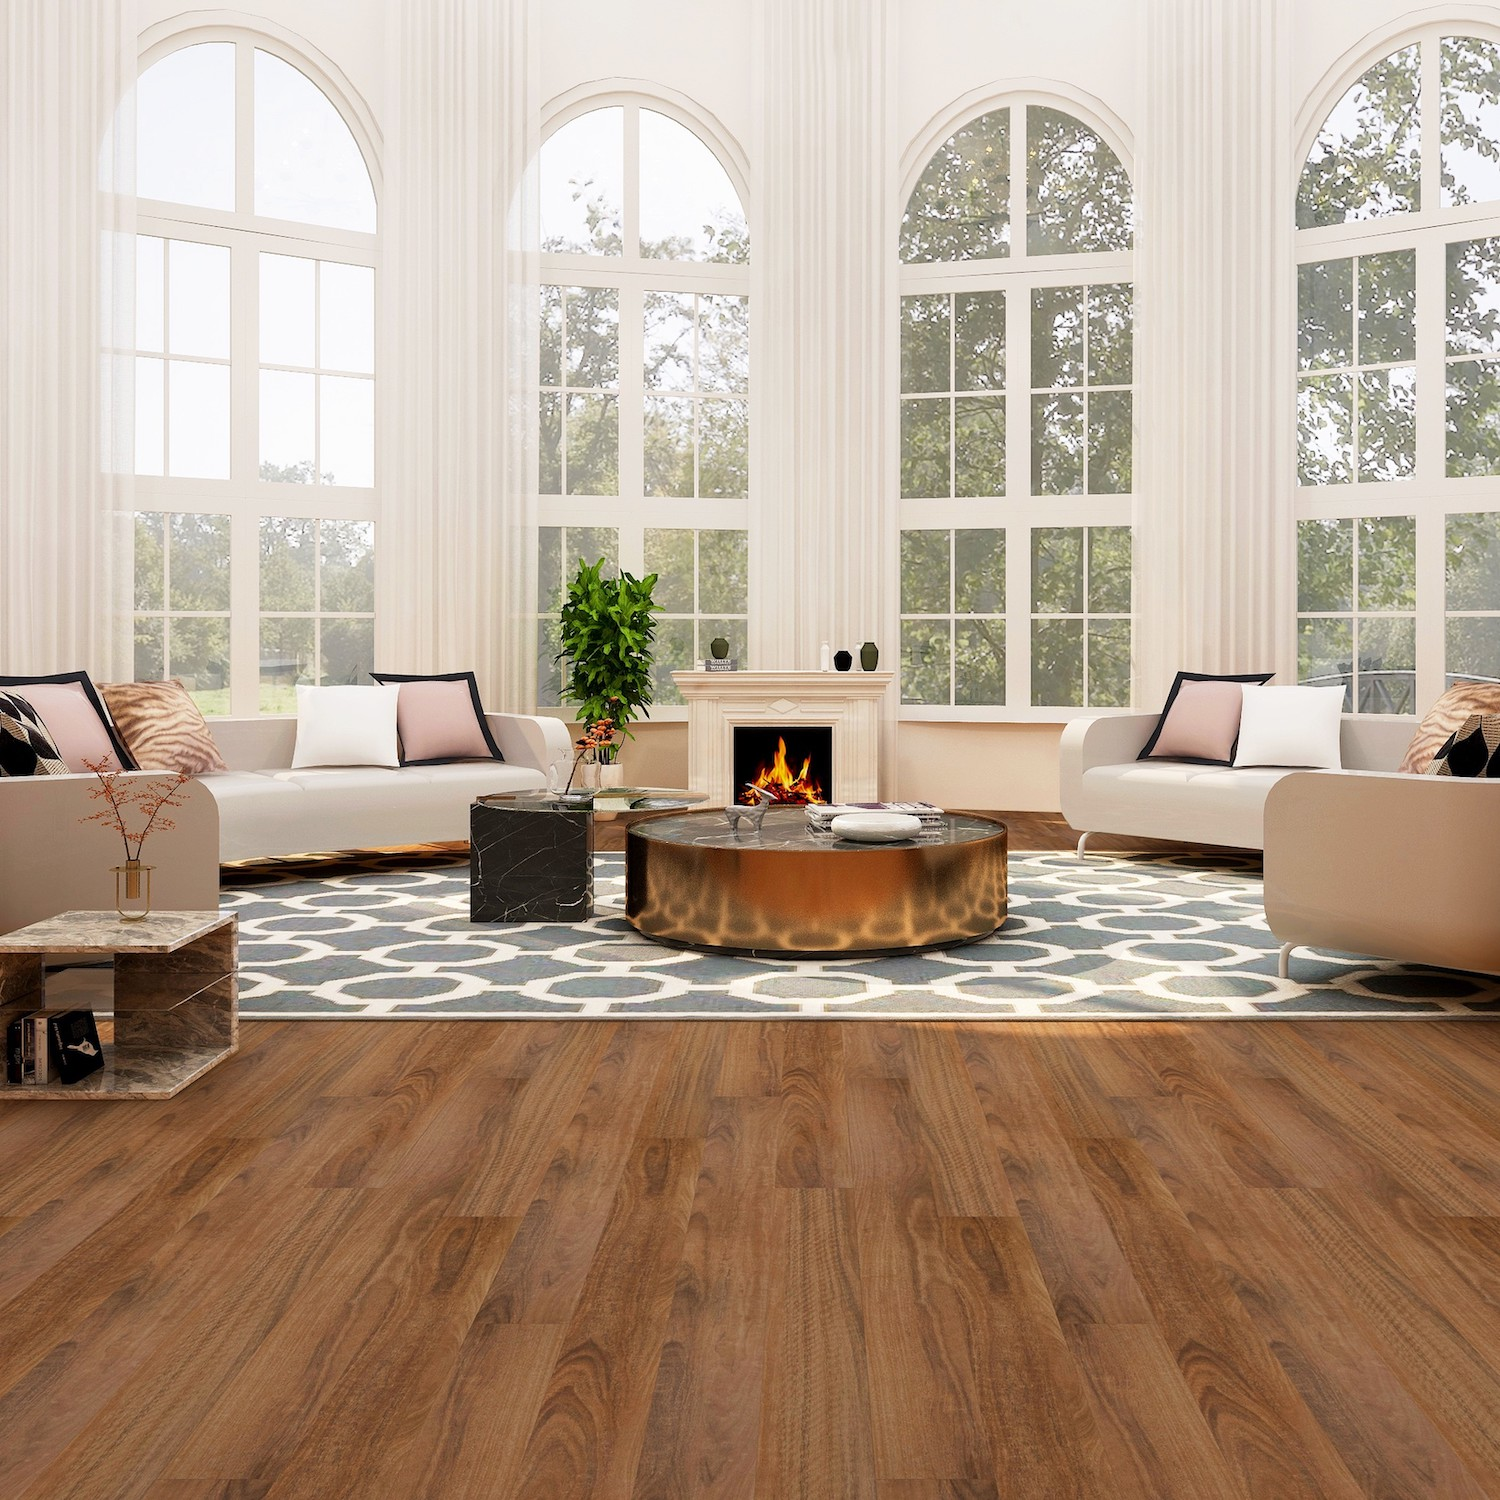 The Luxury Edition introduces the robustness of a laminate floor with the authentic look of a naturally wide and long timber plank. The Abrasion Class of the AC4 surface is up to 40X more resistant to scratching than a lacquered surface. The detail in the genuine-looking decor is not repeated over the entire length of the plank, which makes it a great cost effective alternative to wooden floors. The all-round v-grove provides an expansive impression across the entire floor. There are also matching stair noising & scotia trims available to fit most designs.